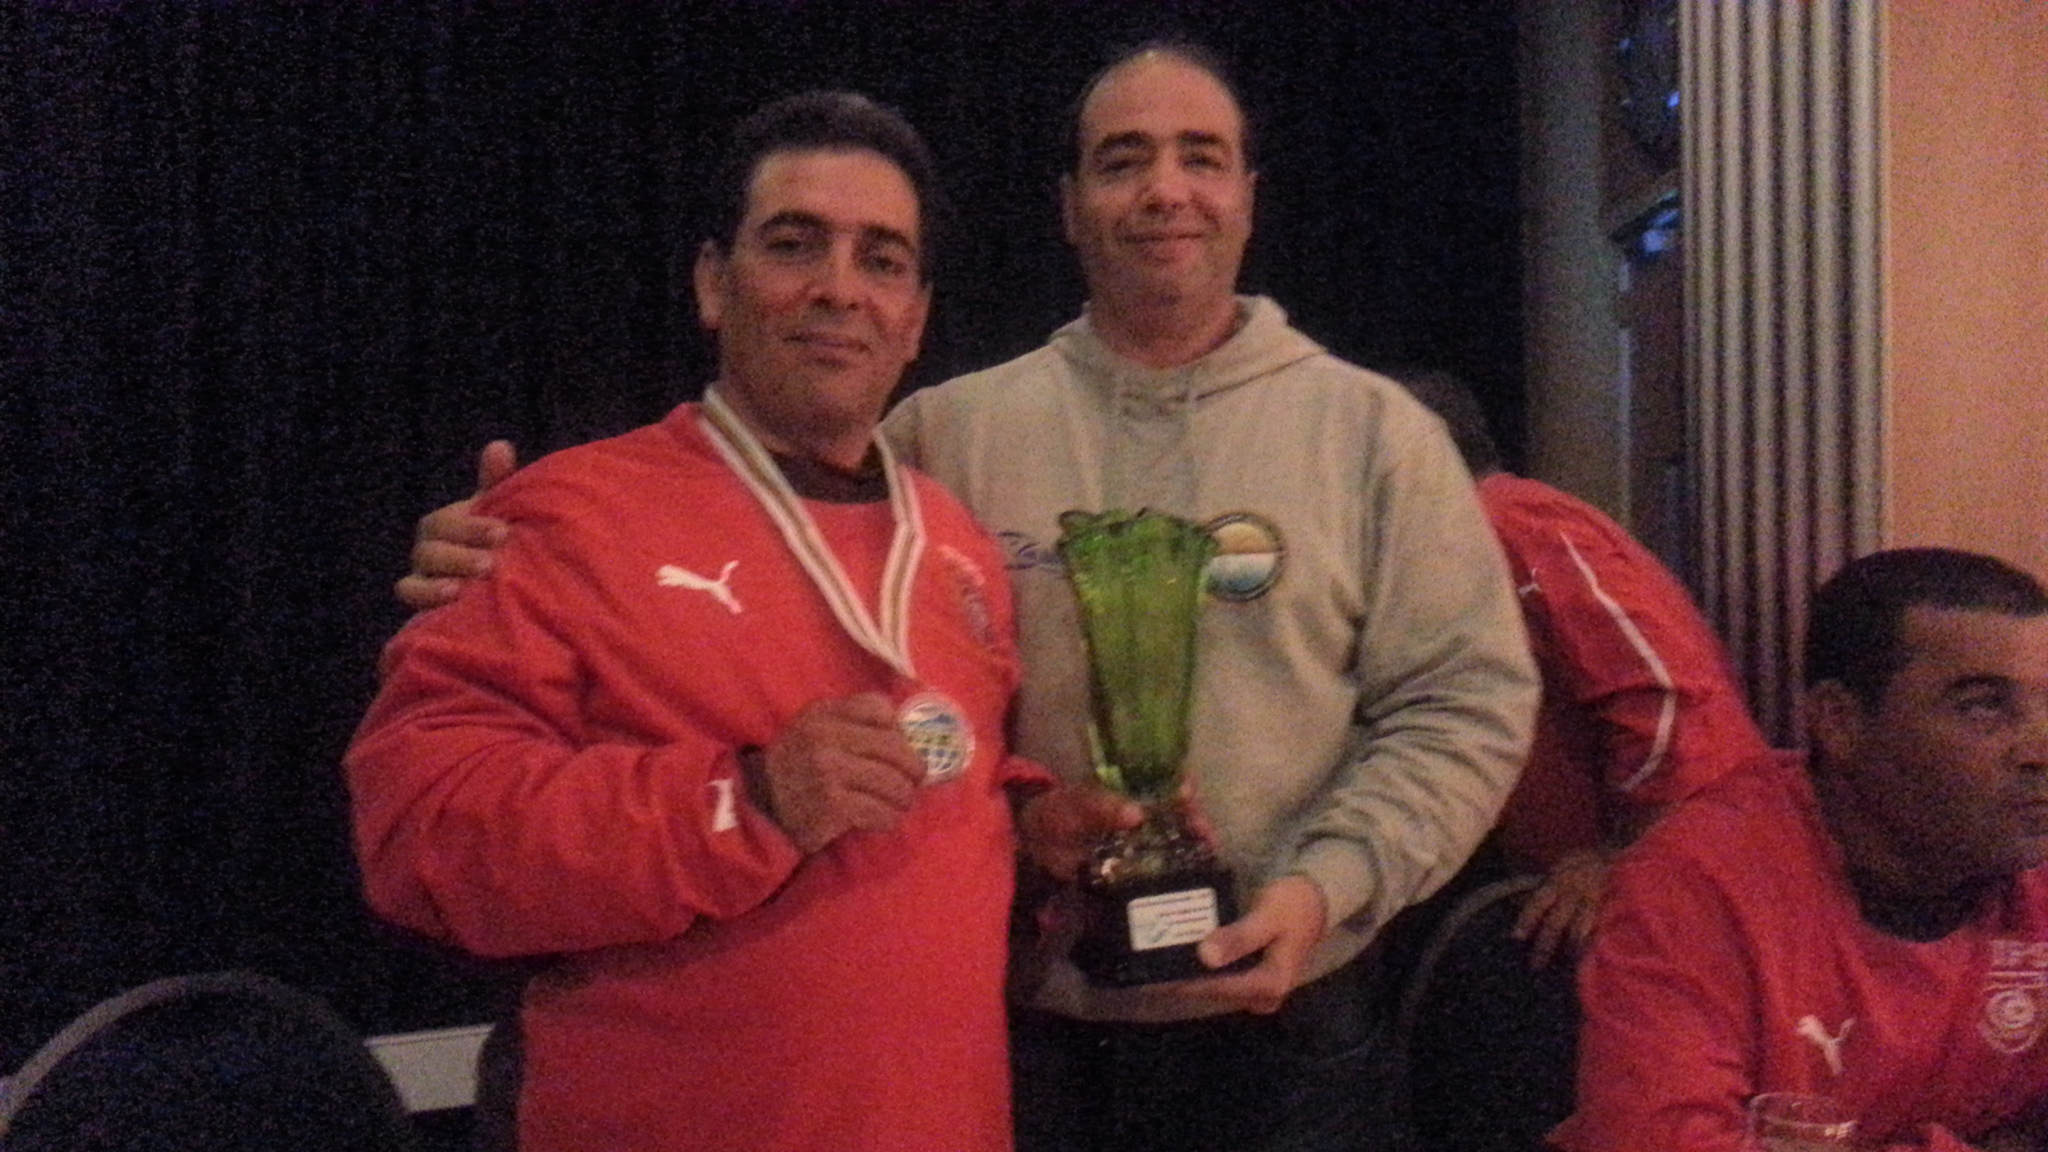 World Champion  Surfcasting 2012,   Karim Dakhlaoui a fianco del Tunisino 2° classificato Mohamed el Arbi